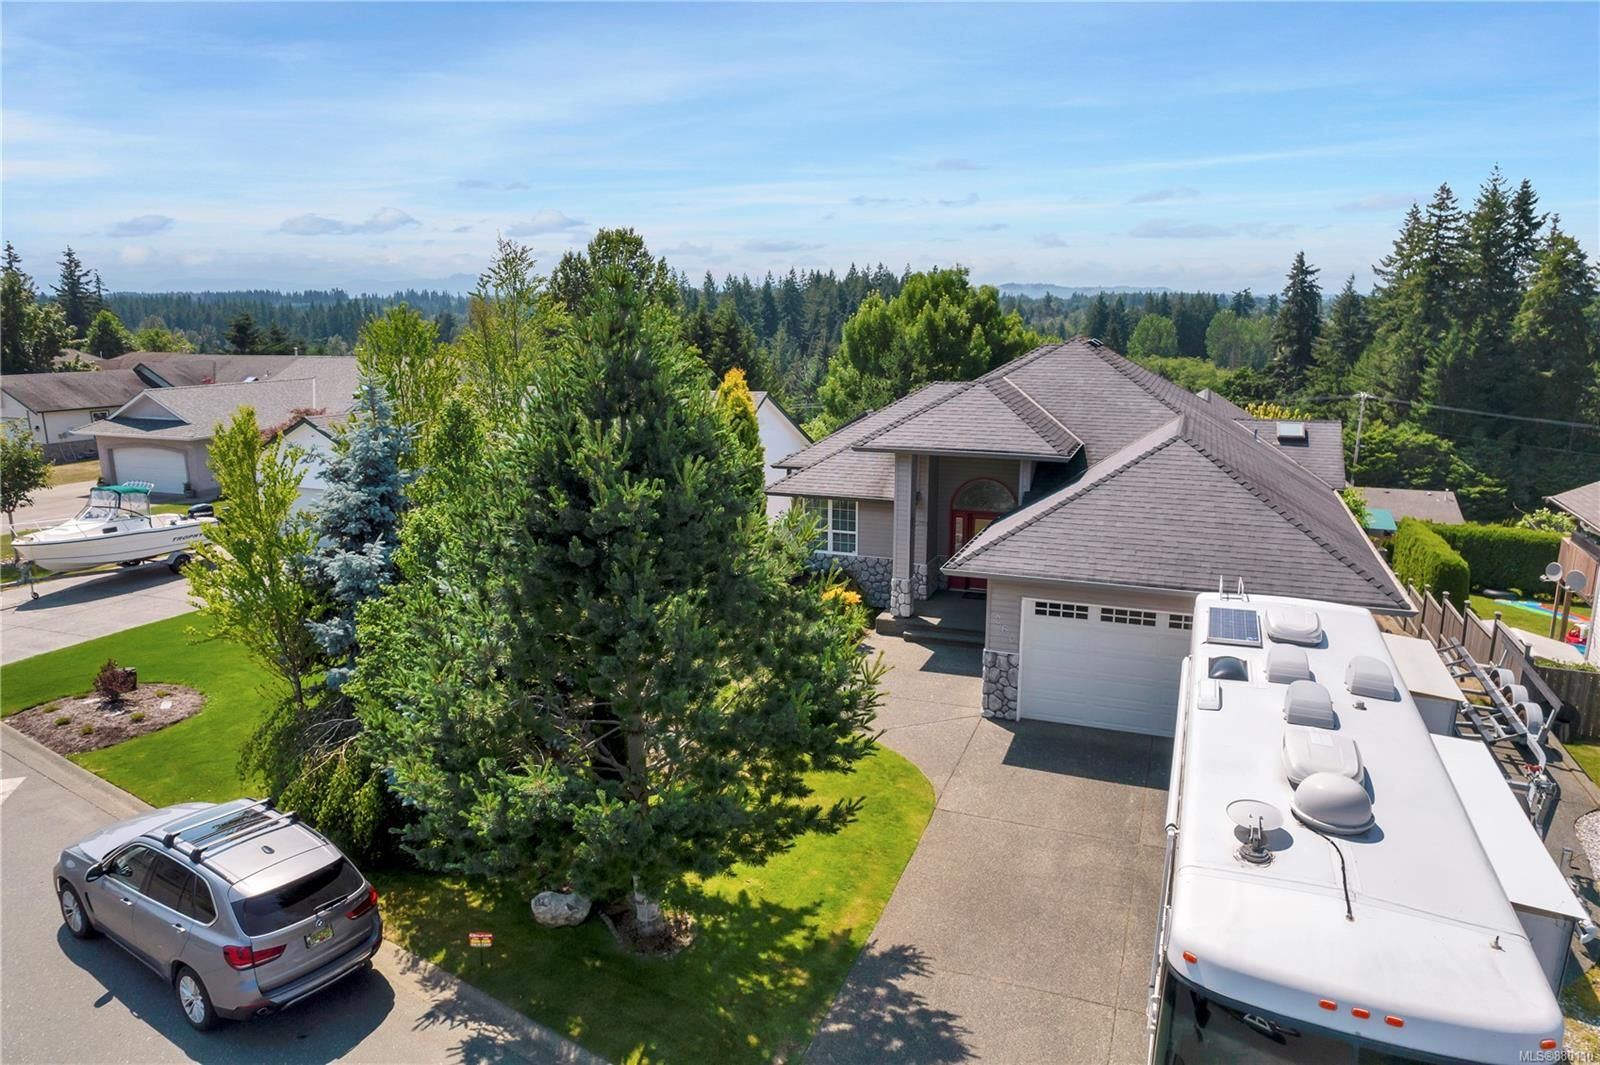 Main Photo: 260 Stratford Dr in : CR Campbell River Central House for sale (Campbell River)  : MLS®# 880110